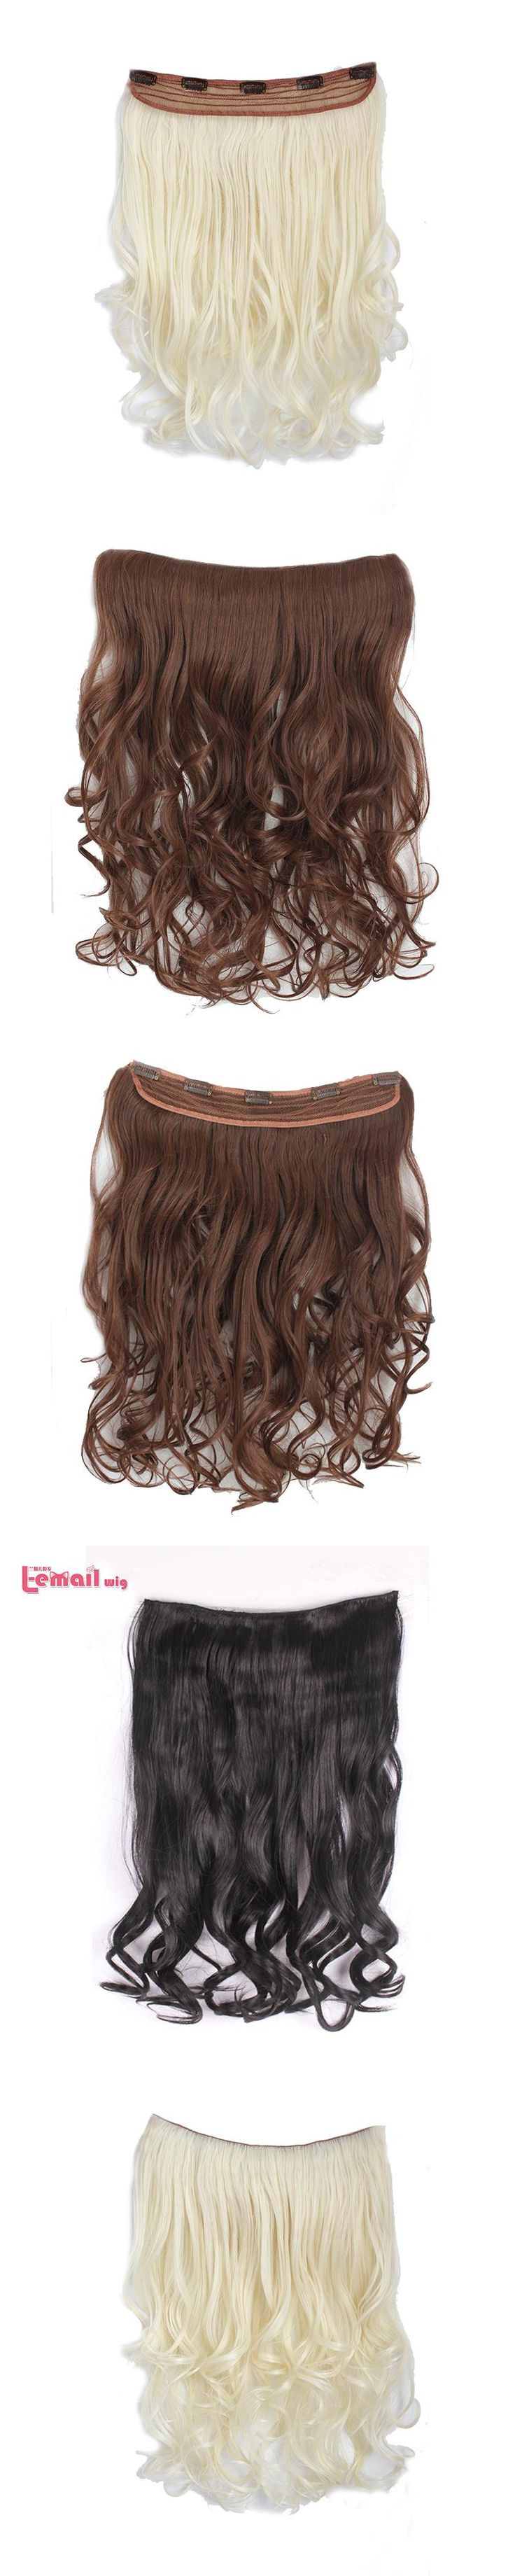 L-email wig 40cm Medium Loose Wavy Black Beige and Light Brown Synthetic Hair Extensions Clip-in One Piece Hair Extensions